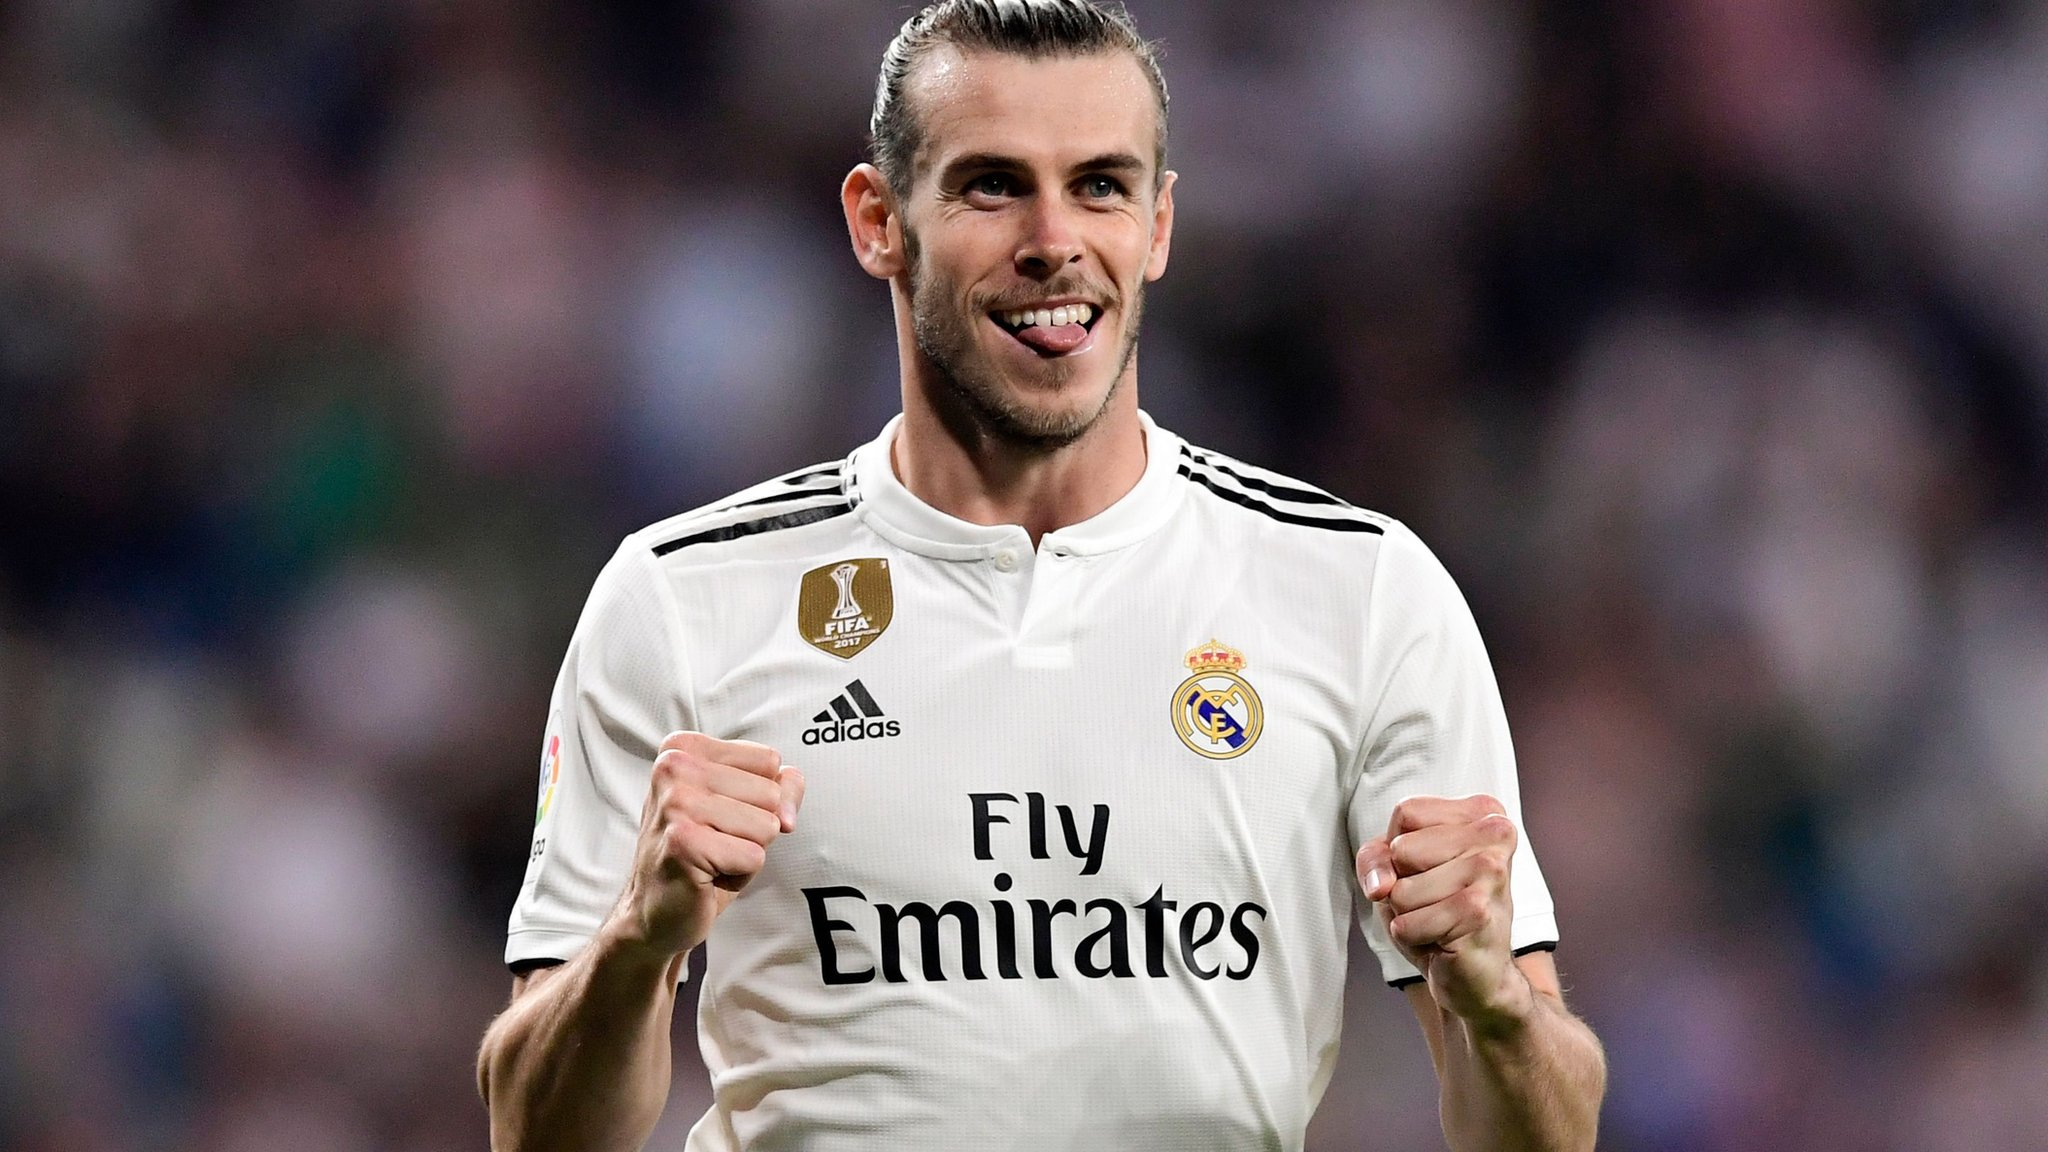 Bale scores as Real win opening match of La Liga season